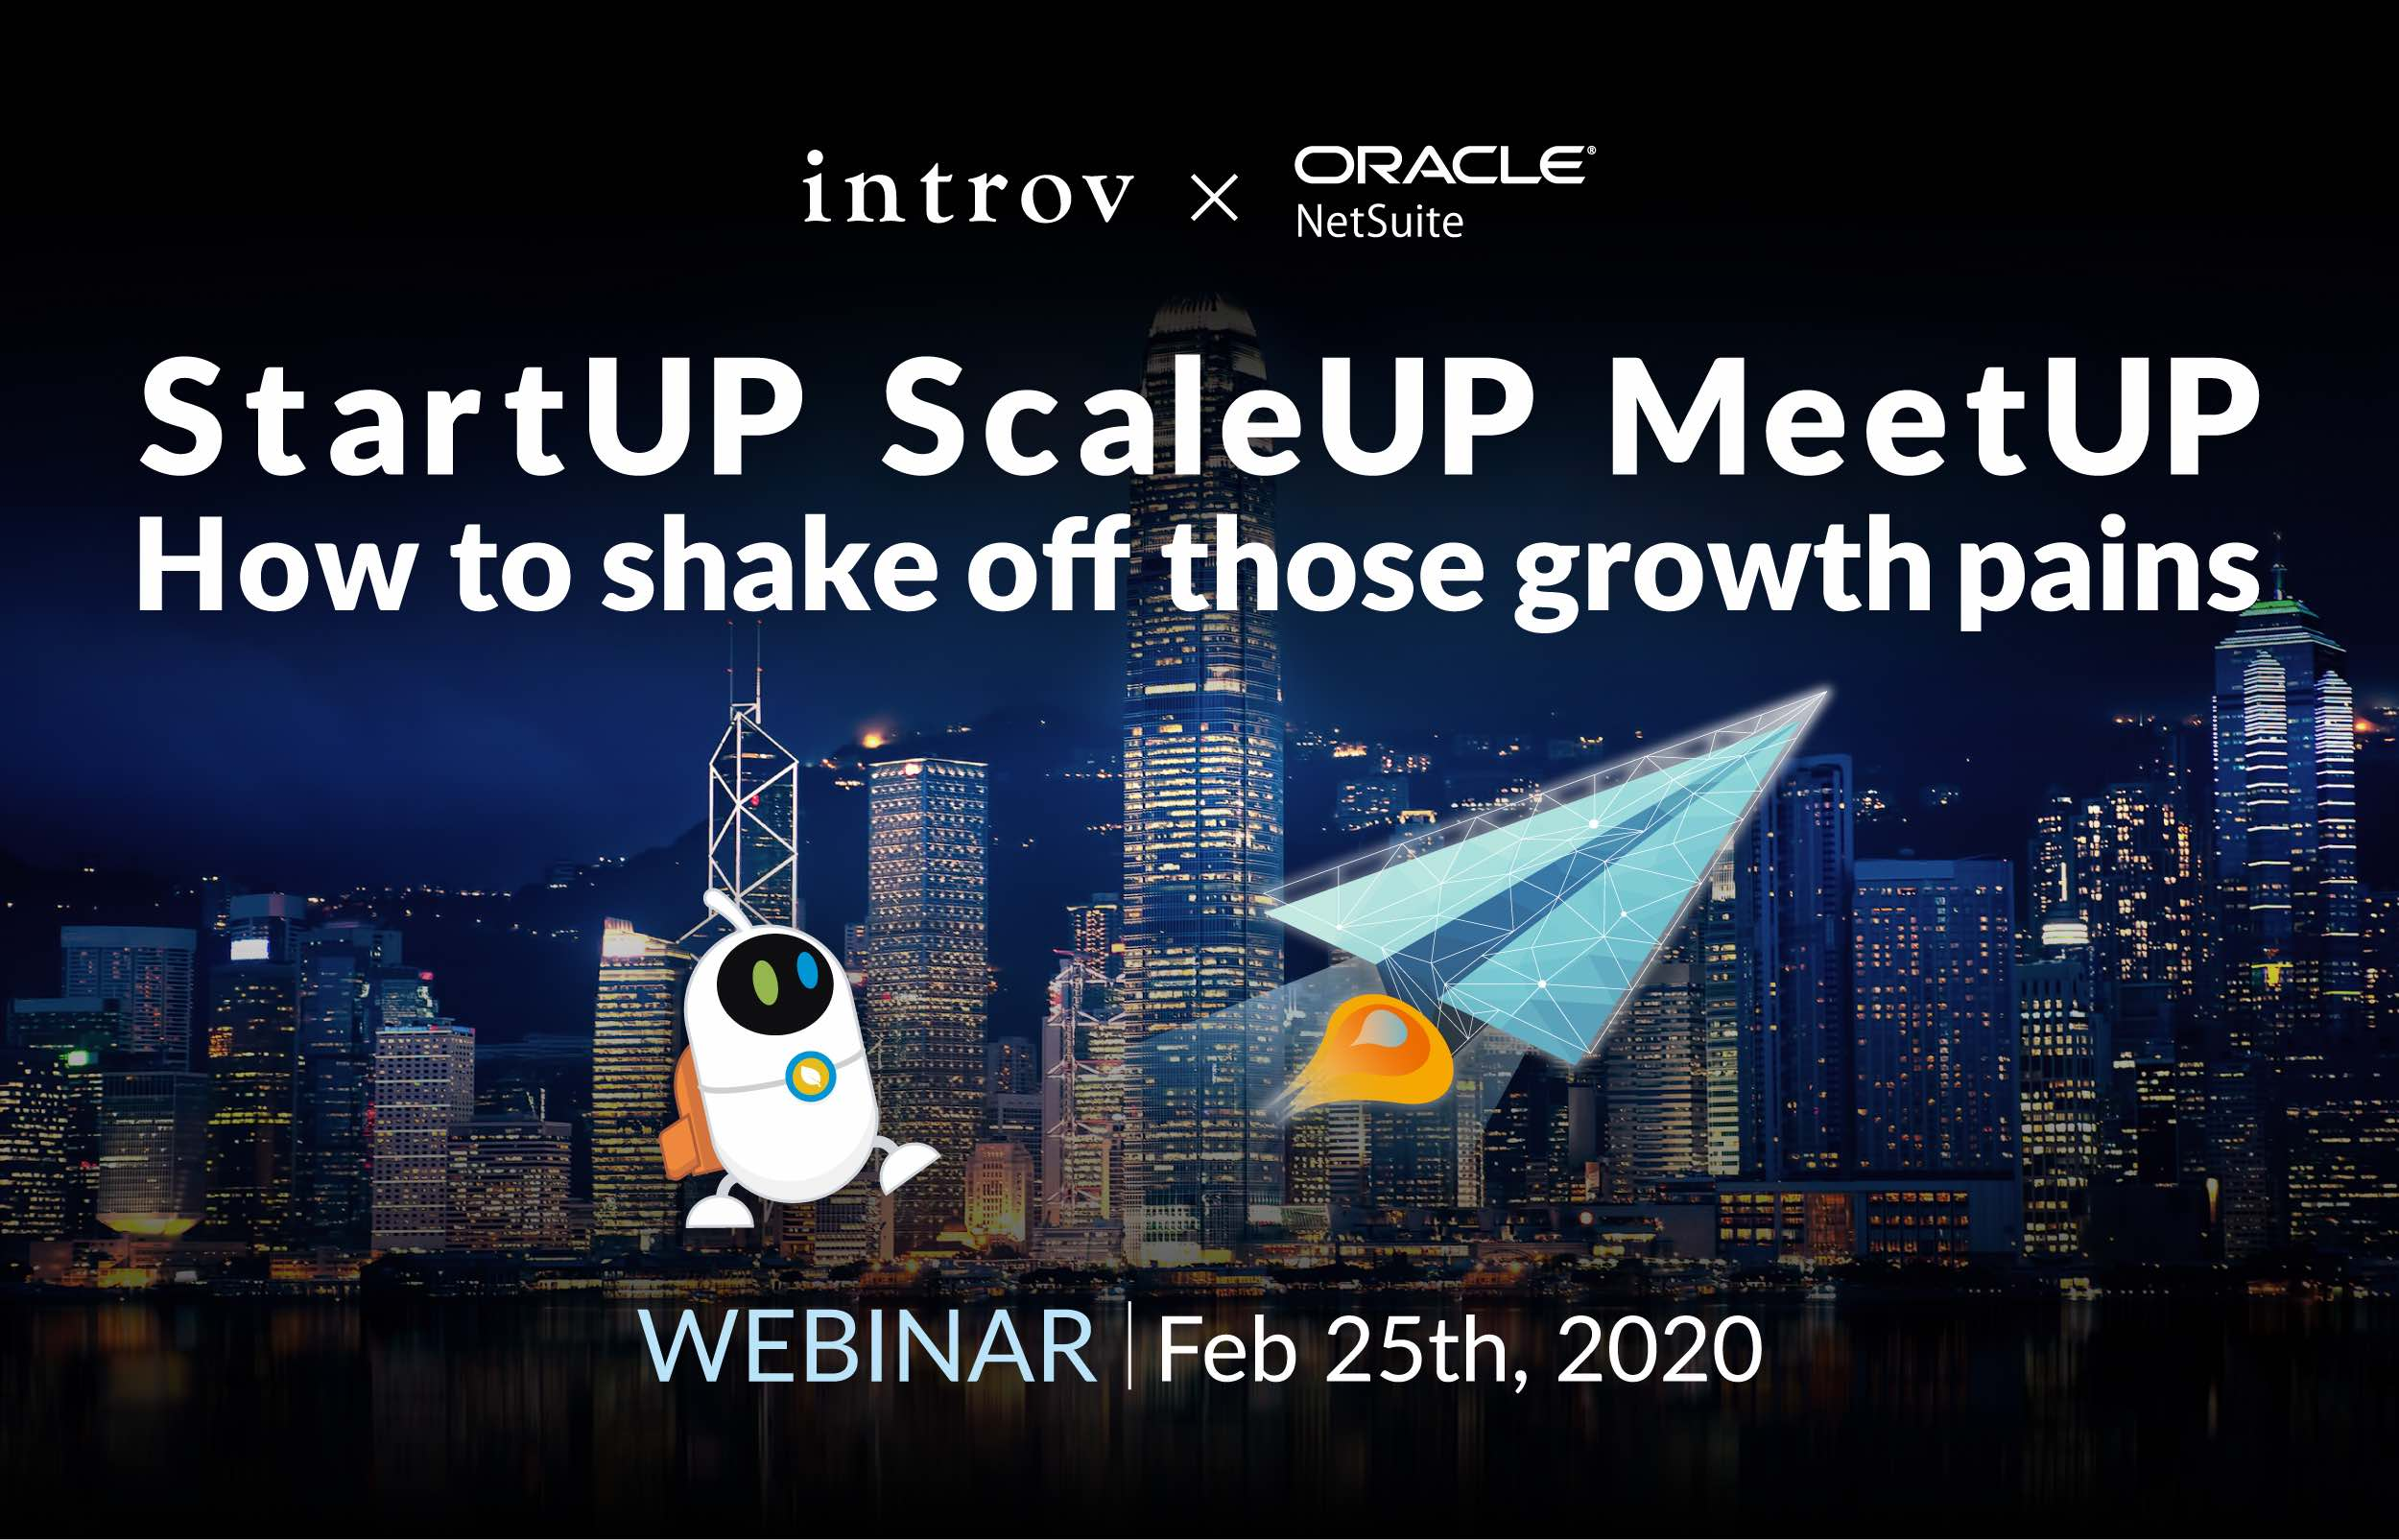 Webinar: StartUP ScaleUP MeetUP, How to shake off those growth pains (February 25th, 2020)